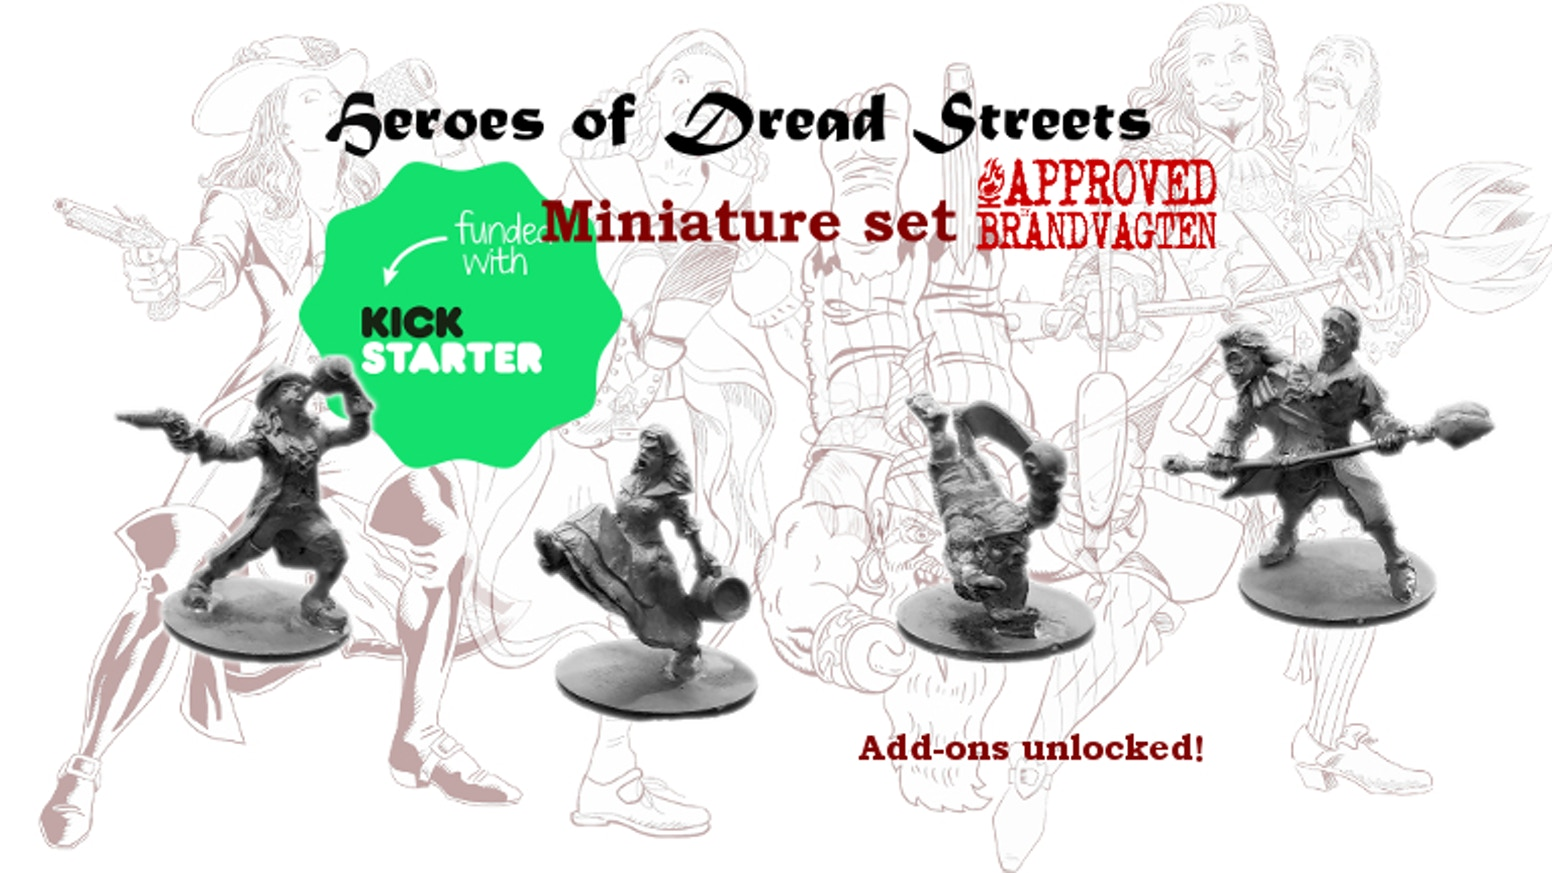 A set of 4 swashbuckler heroes, for tabletop gamers and collectors of garishly clad miniatures!